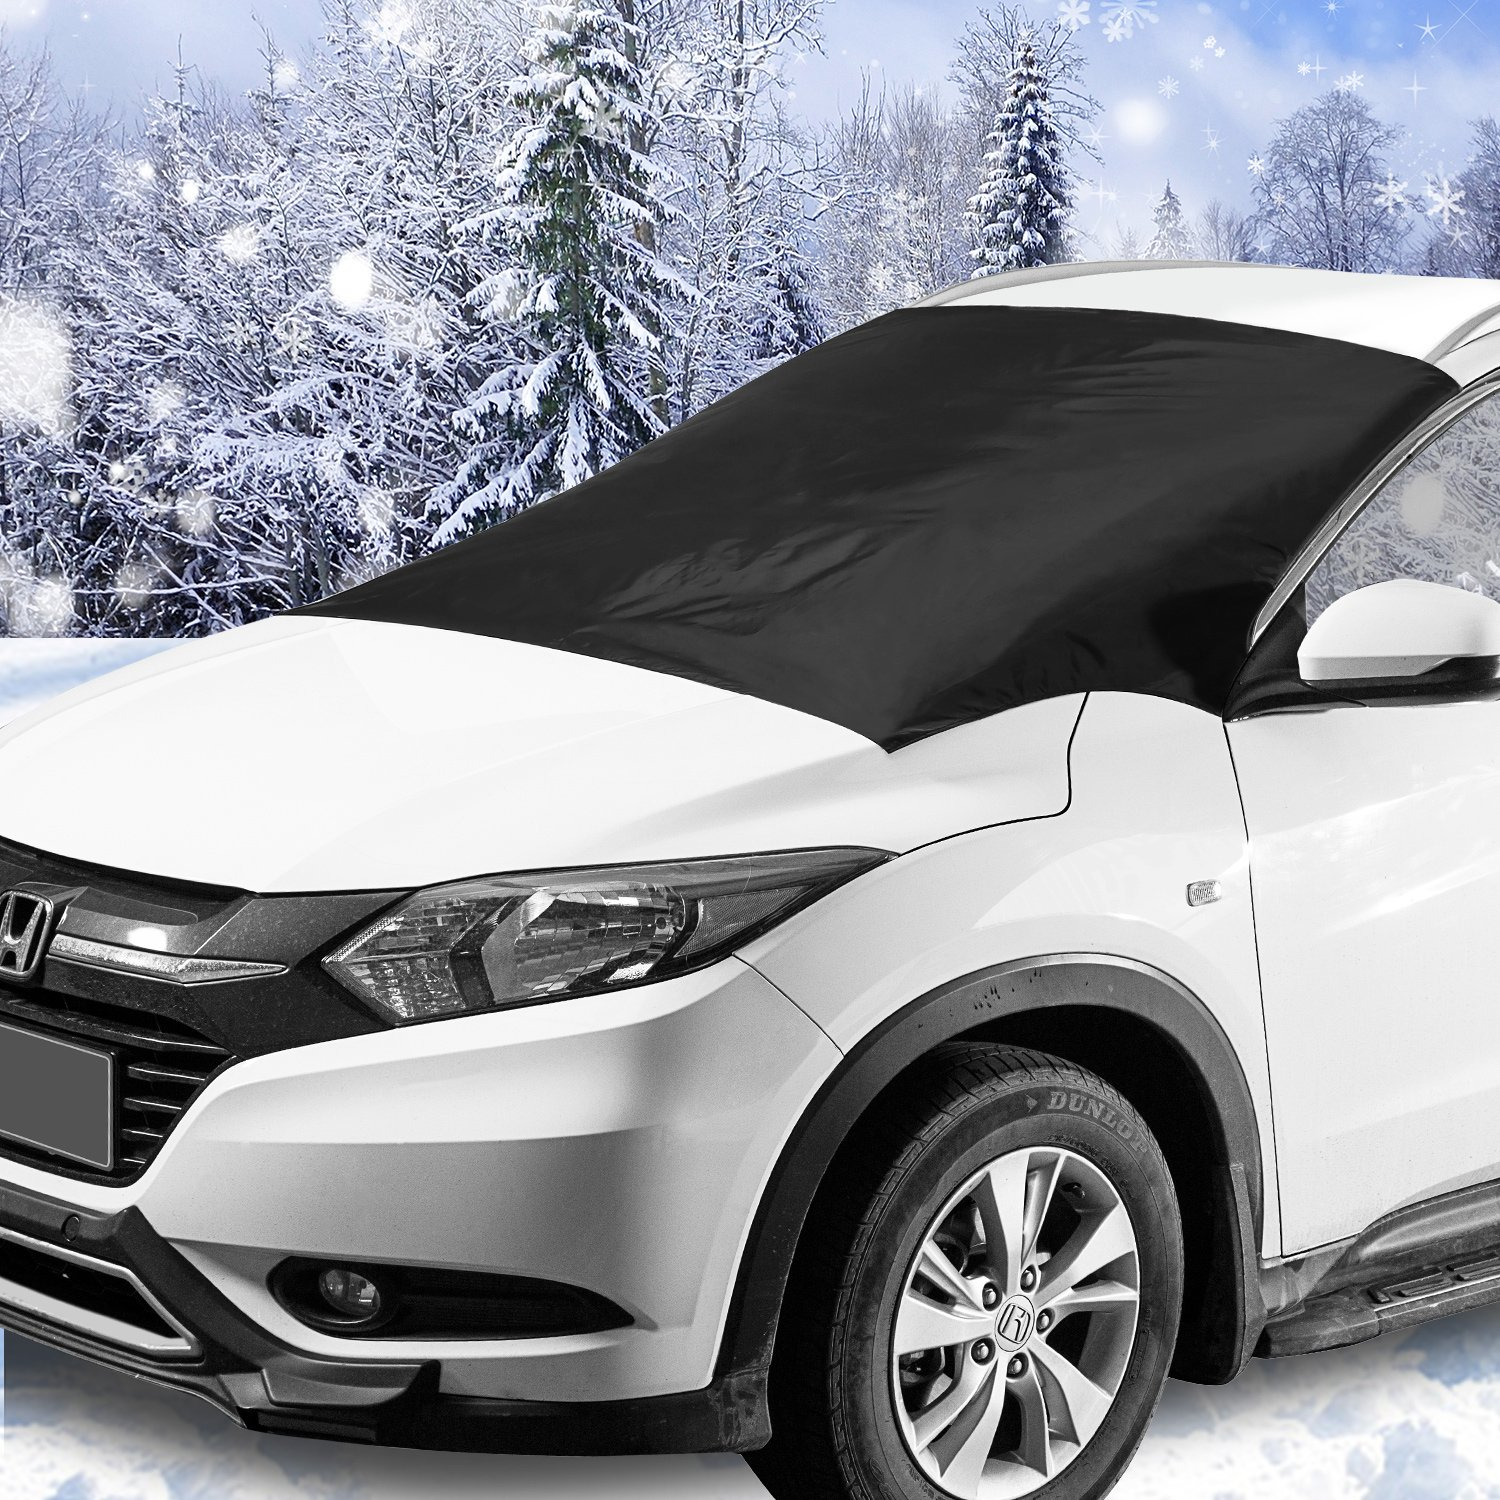 Windshield Snow & Ice Cover, Waterproof, sun protection For All Cars, Trucks, SUVs, MPVs, with Magnetic (47'' × 82'')